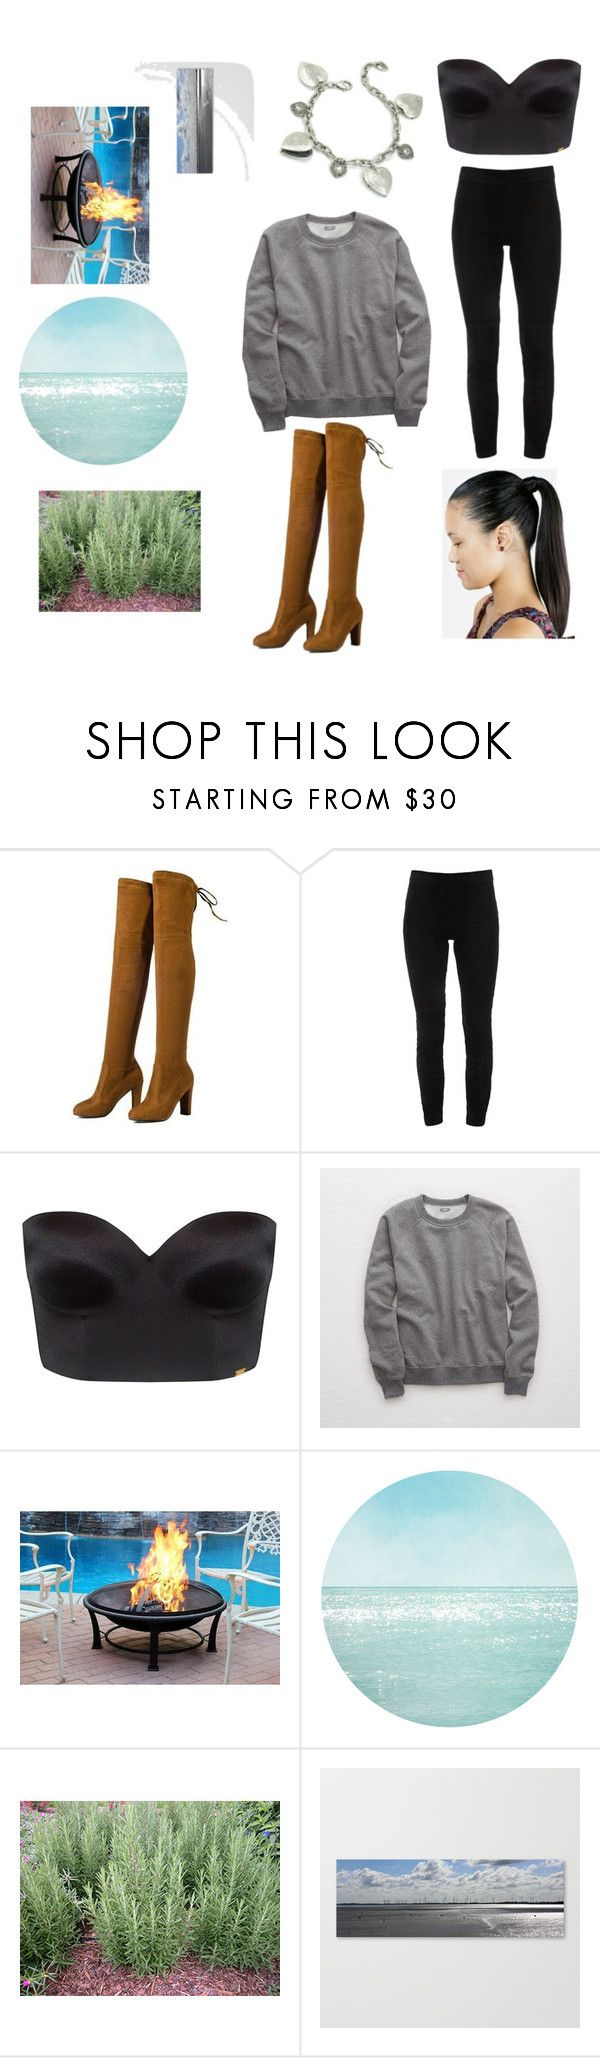 """""""Untitled #170"""" by madhatters-daughter ❤ liked on Polyvore featuring Elie Tahari, Ultimo and Aerie"""